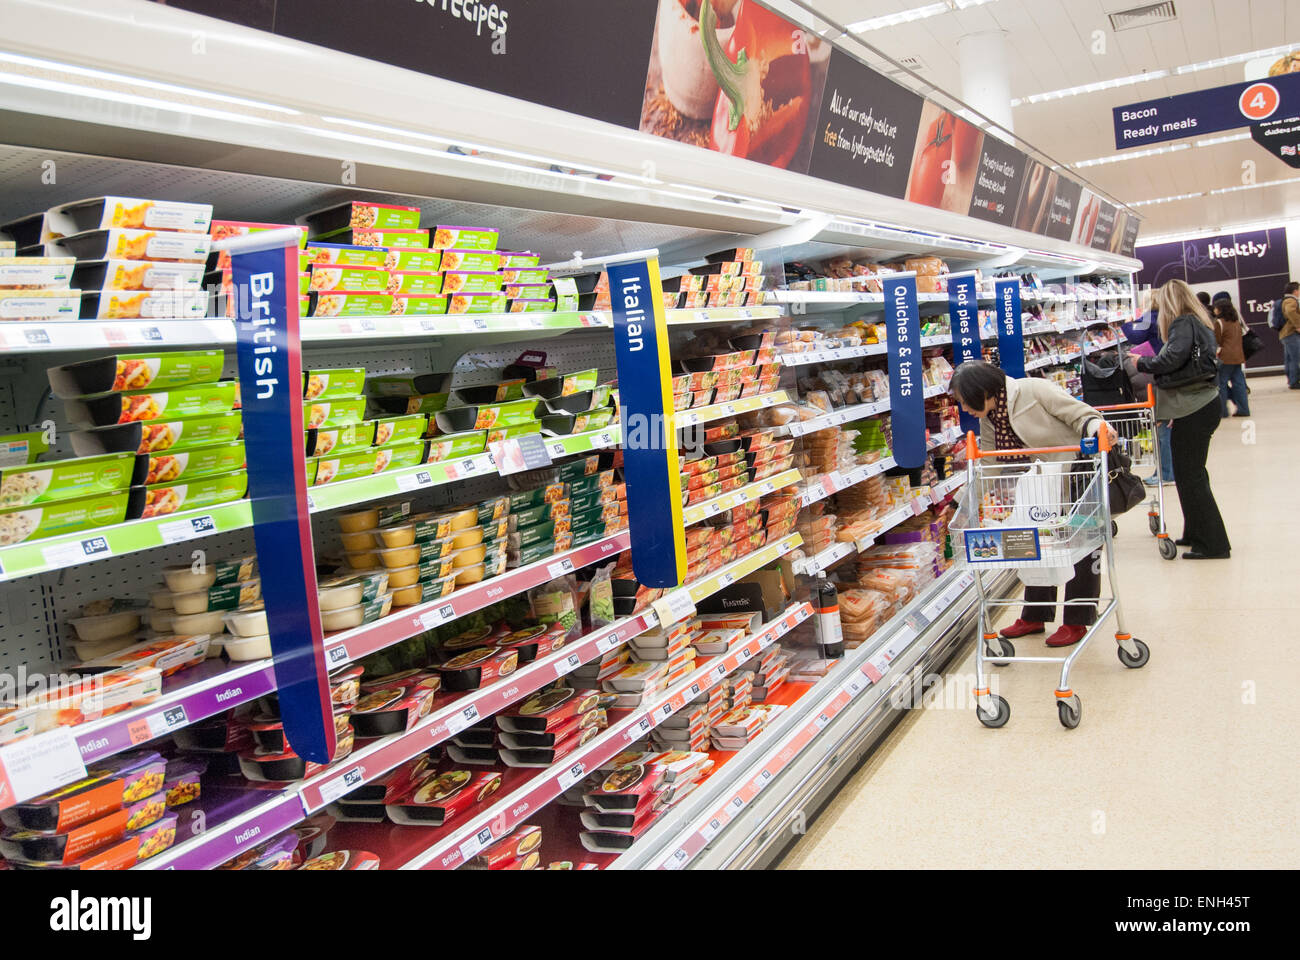 Supermarket Sainsburys Shelves Stock Photos & Supermarket ...